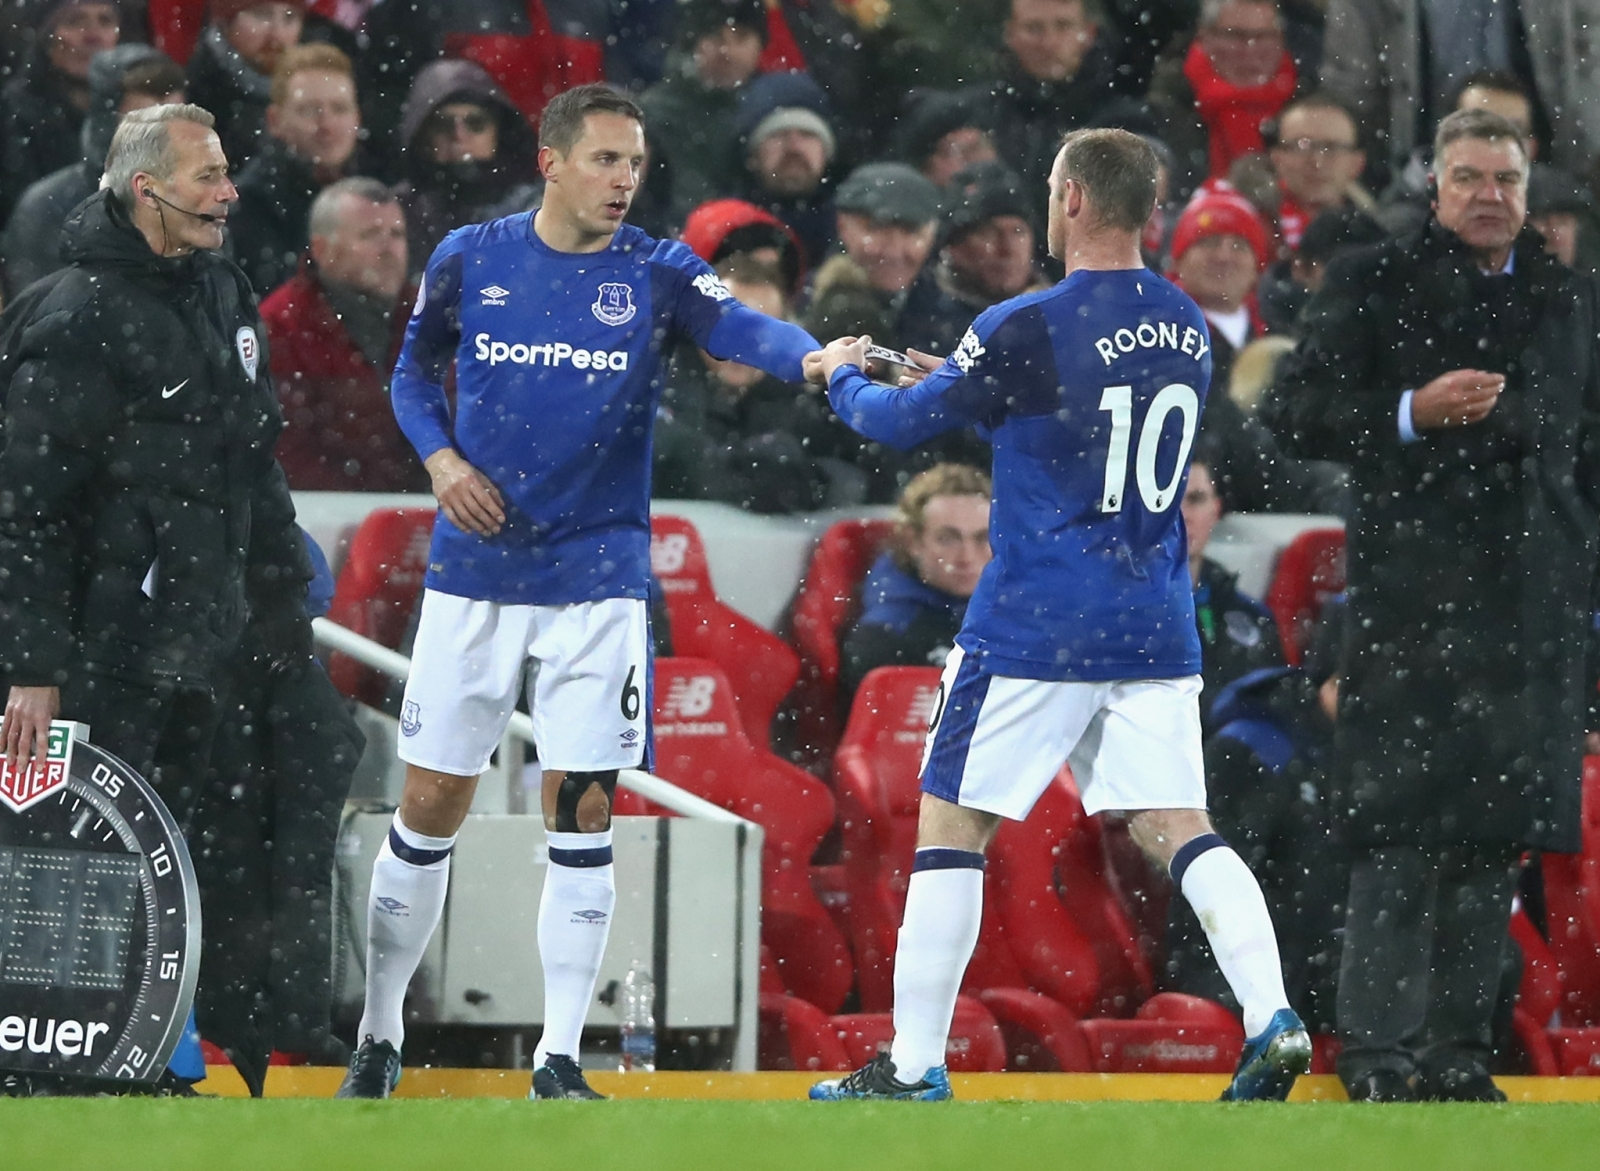 Phil Jagielka and Wayne Rooney